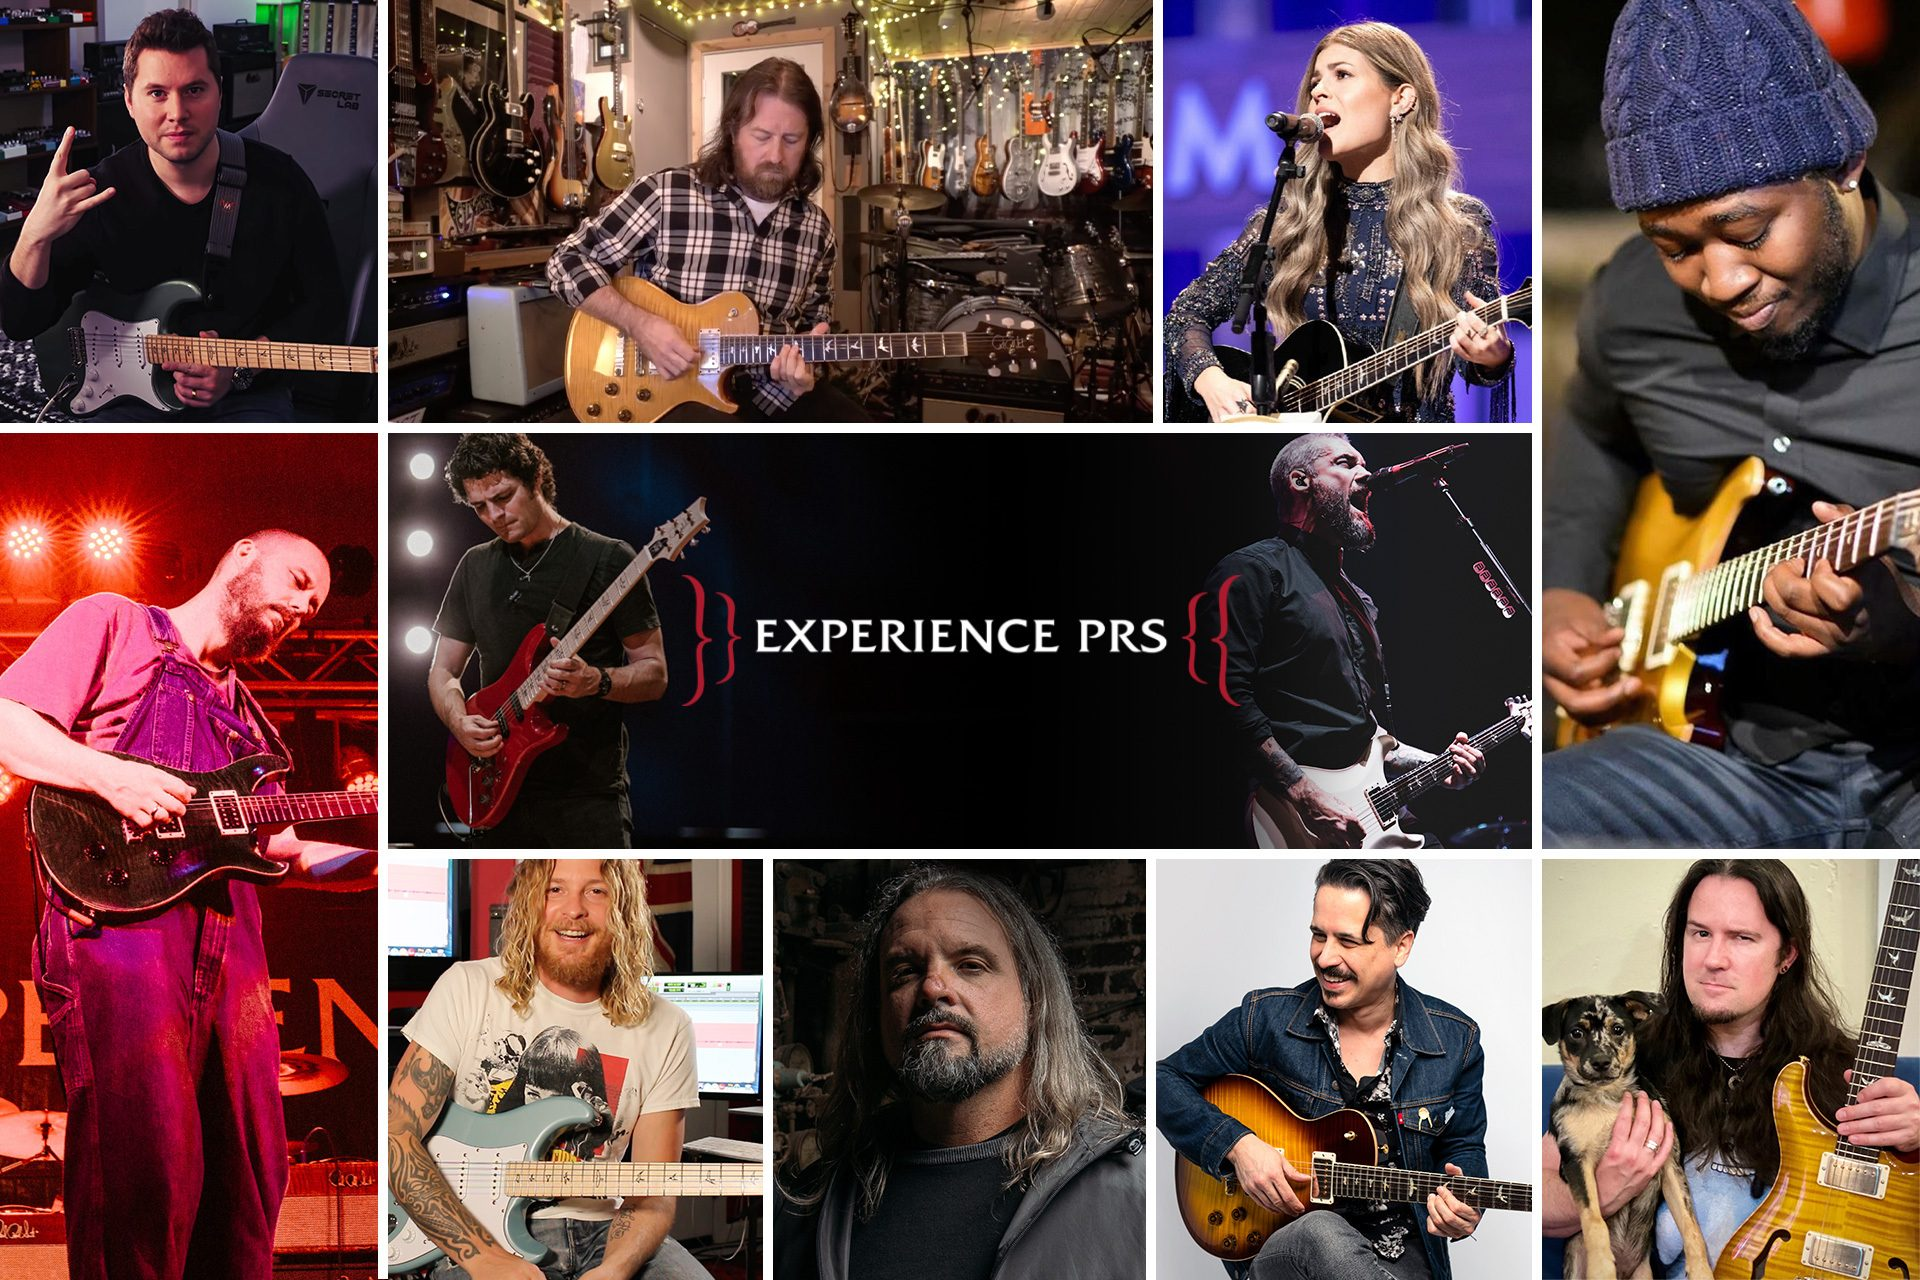 Re-Watch Experience PRS 2021 Jam Breaks and Clinics!